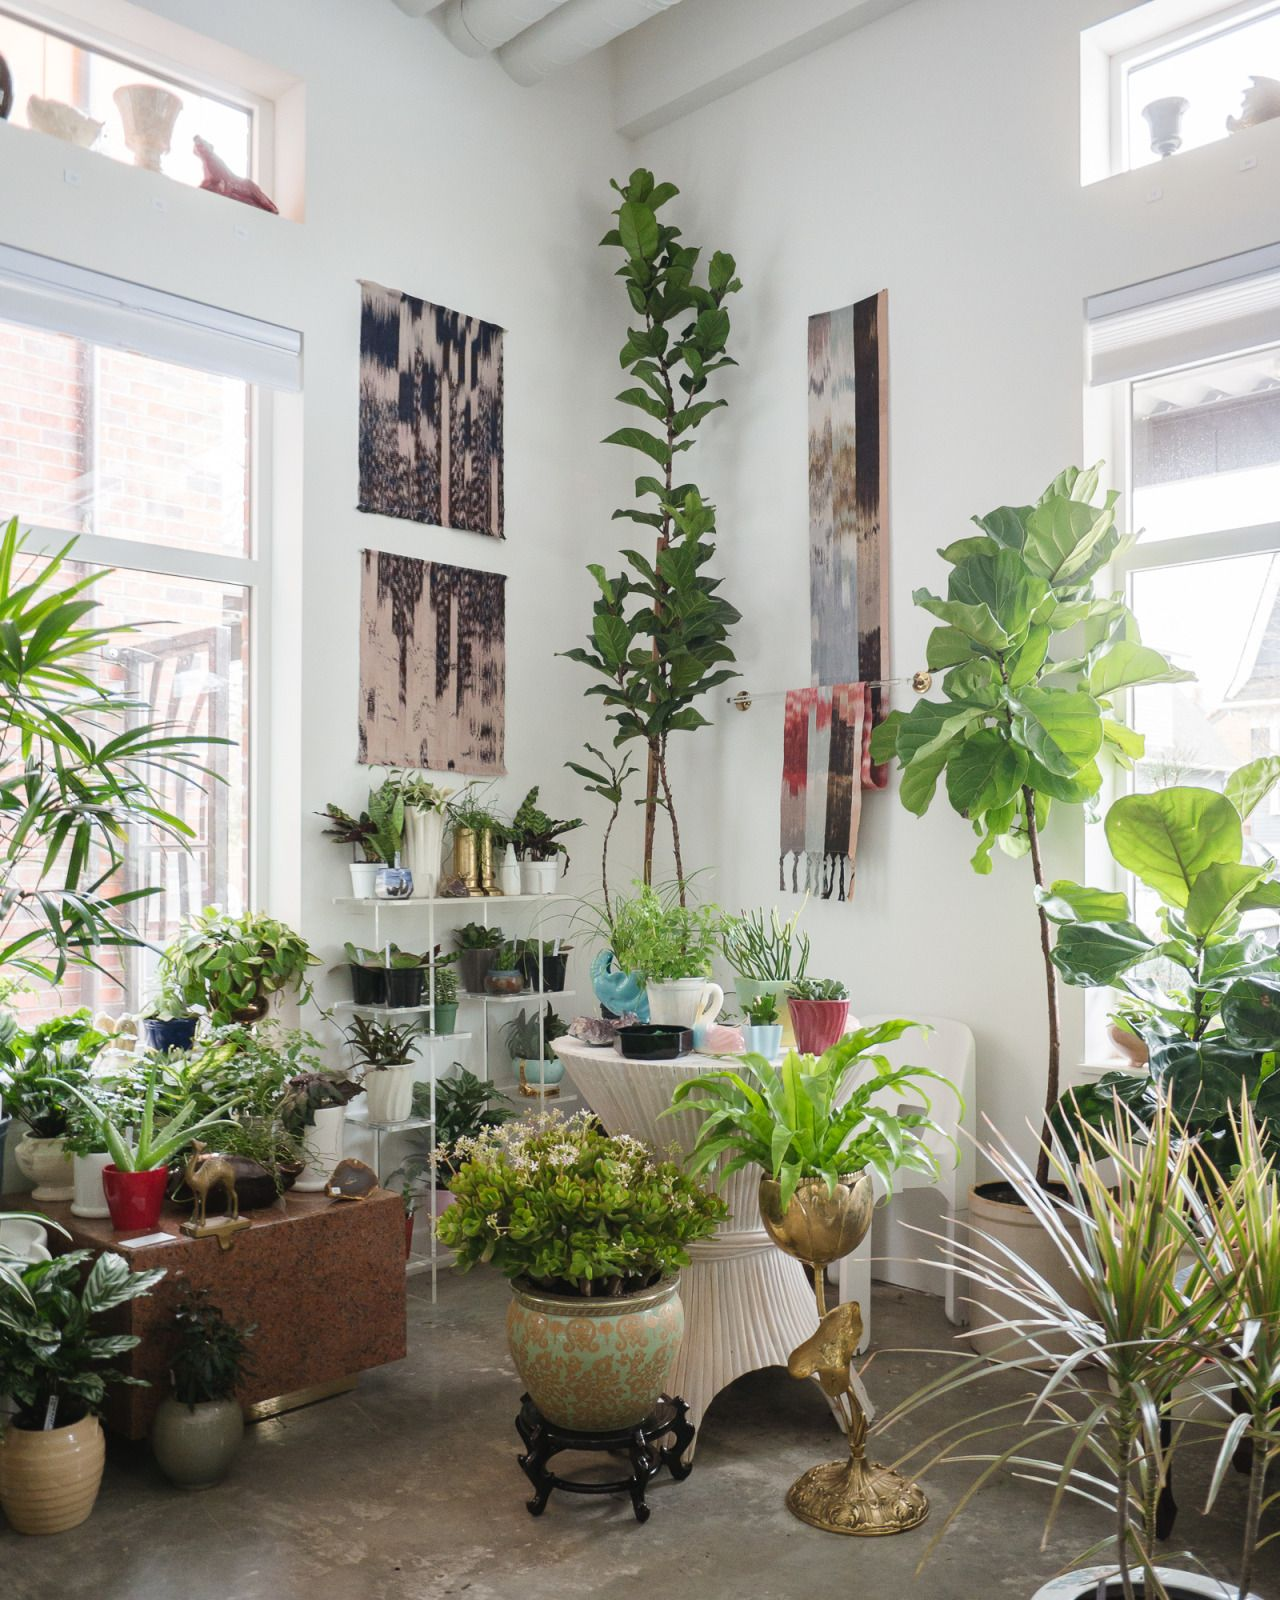 Homesteadseattle Last Day Of Our Plant Pop Up At The